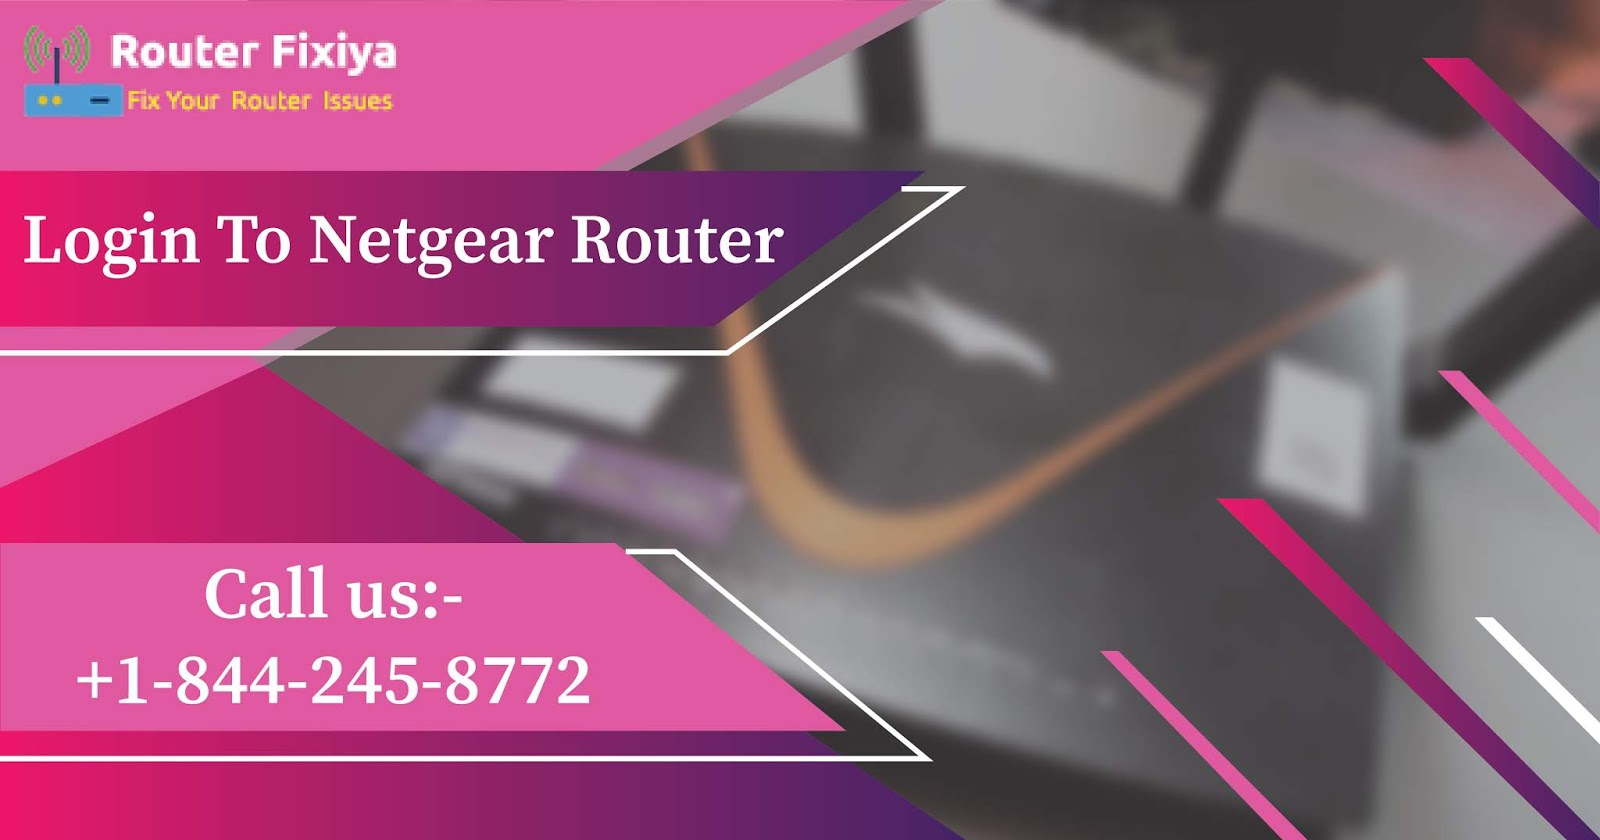 Netgear Router Support number- +1-844-245-8772: How to Login